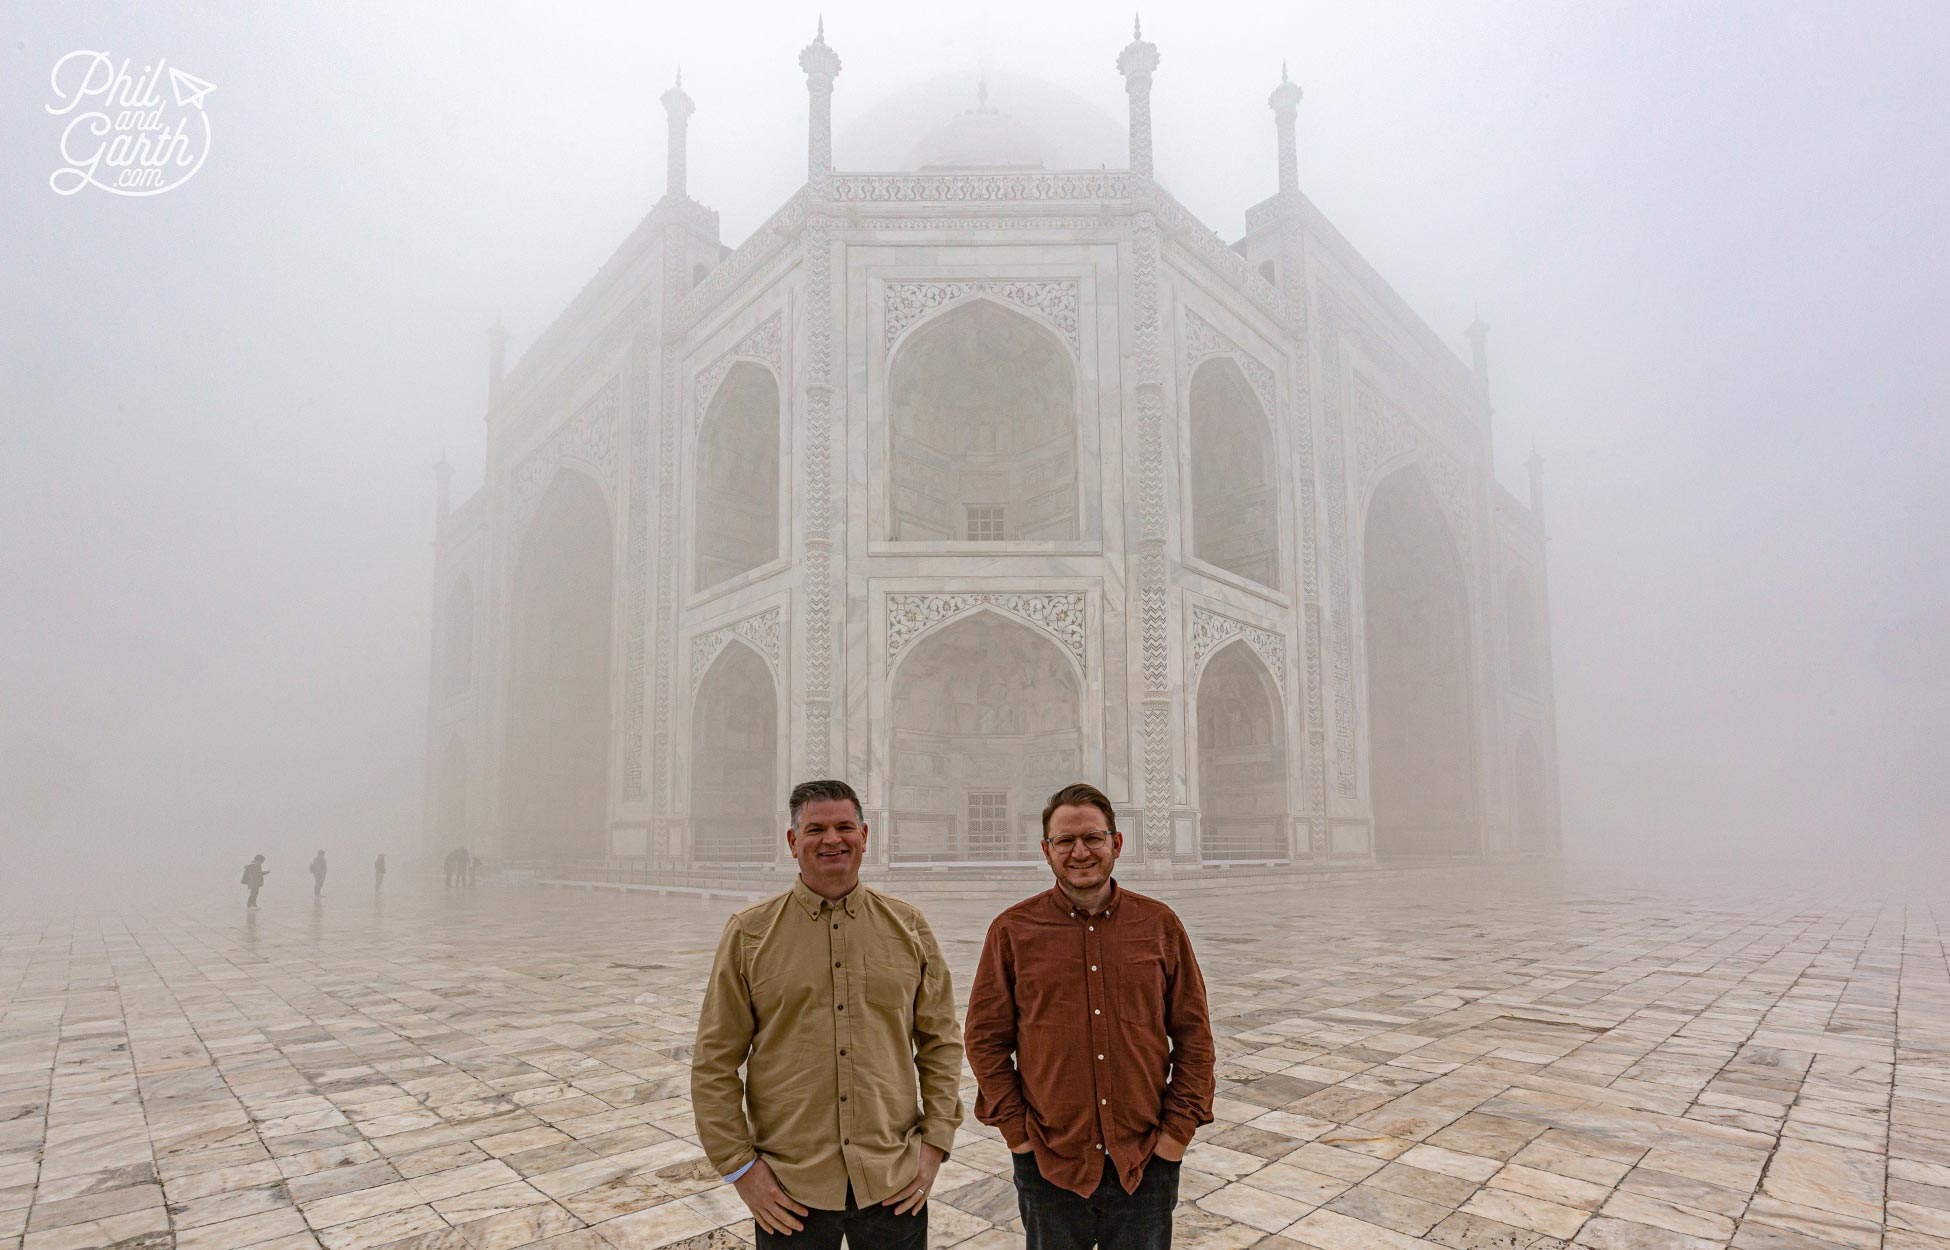 Phil and Garth stood on the upper terrace of the Taj Mahal